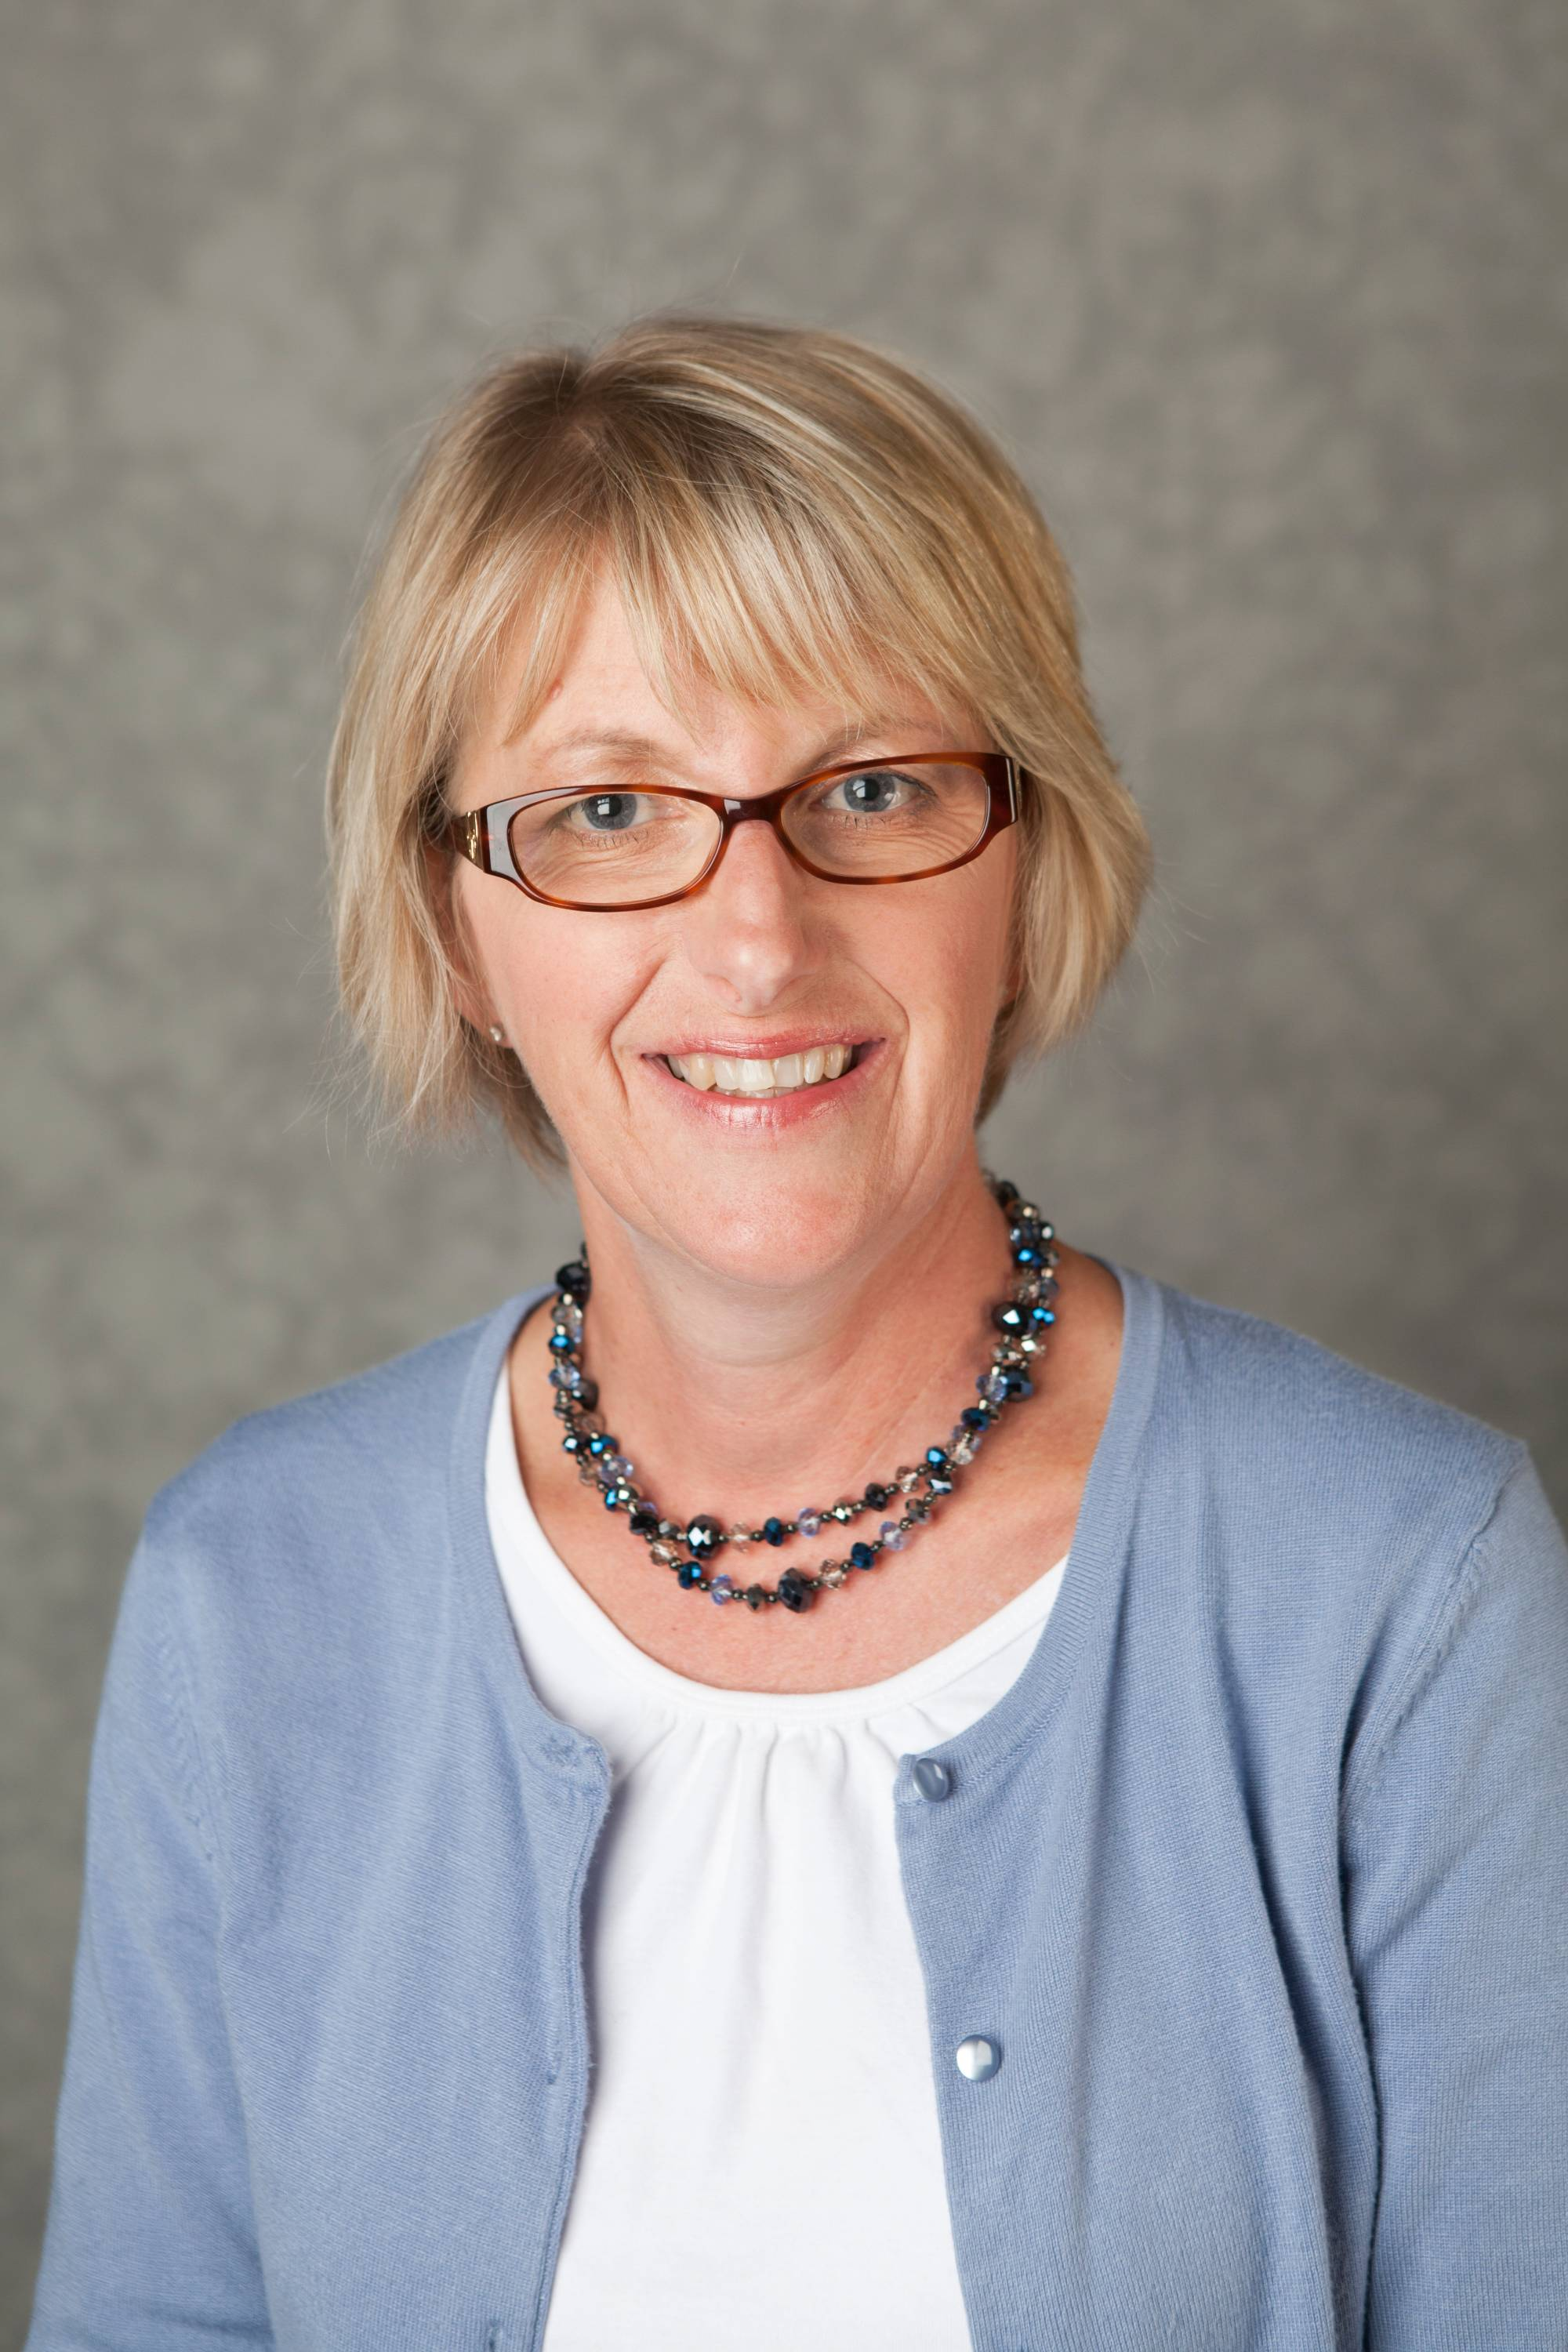 Professional Headshot of Patty Stow Bolea, School of Social Work and Pew FTLC Faculty Fellow